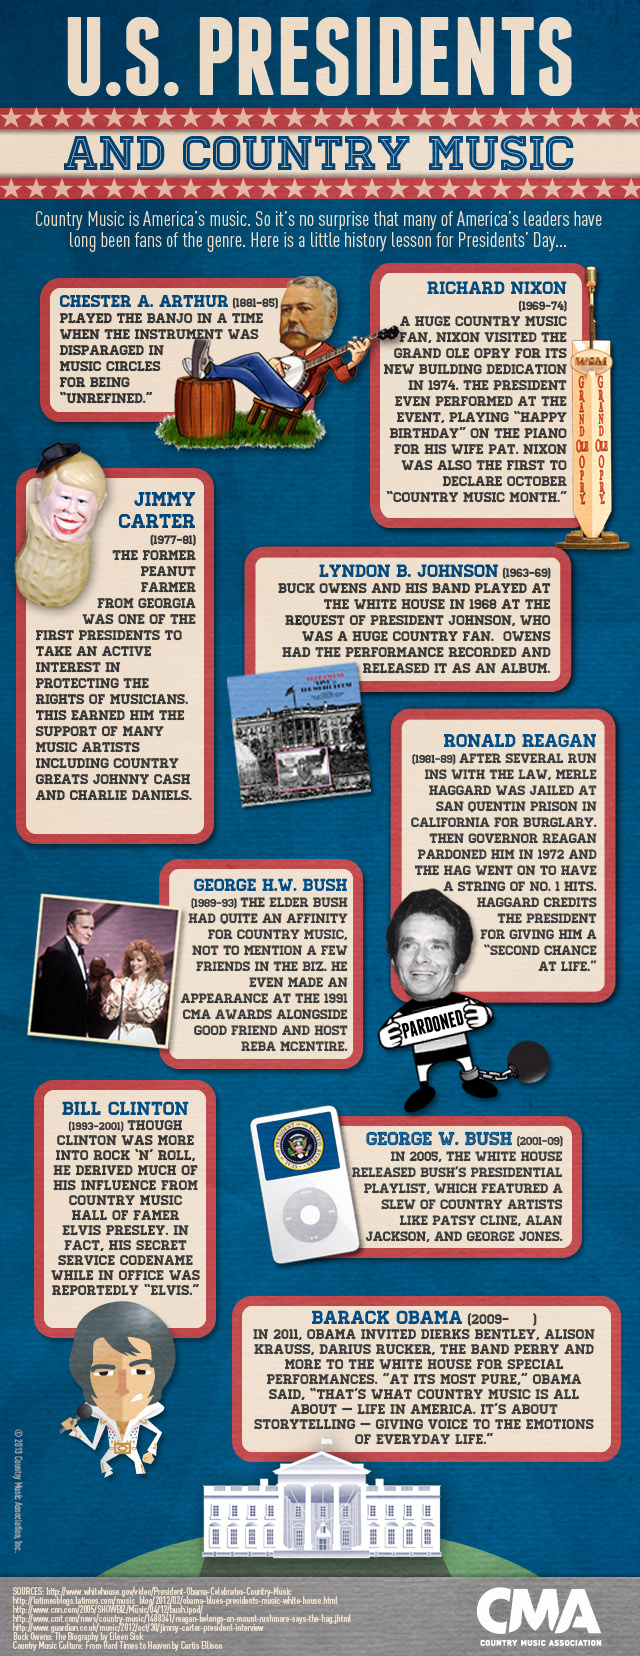 presidents-and-country-music-infographic